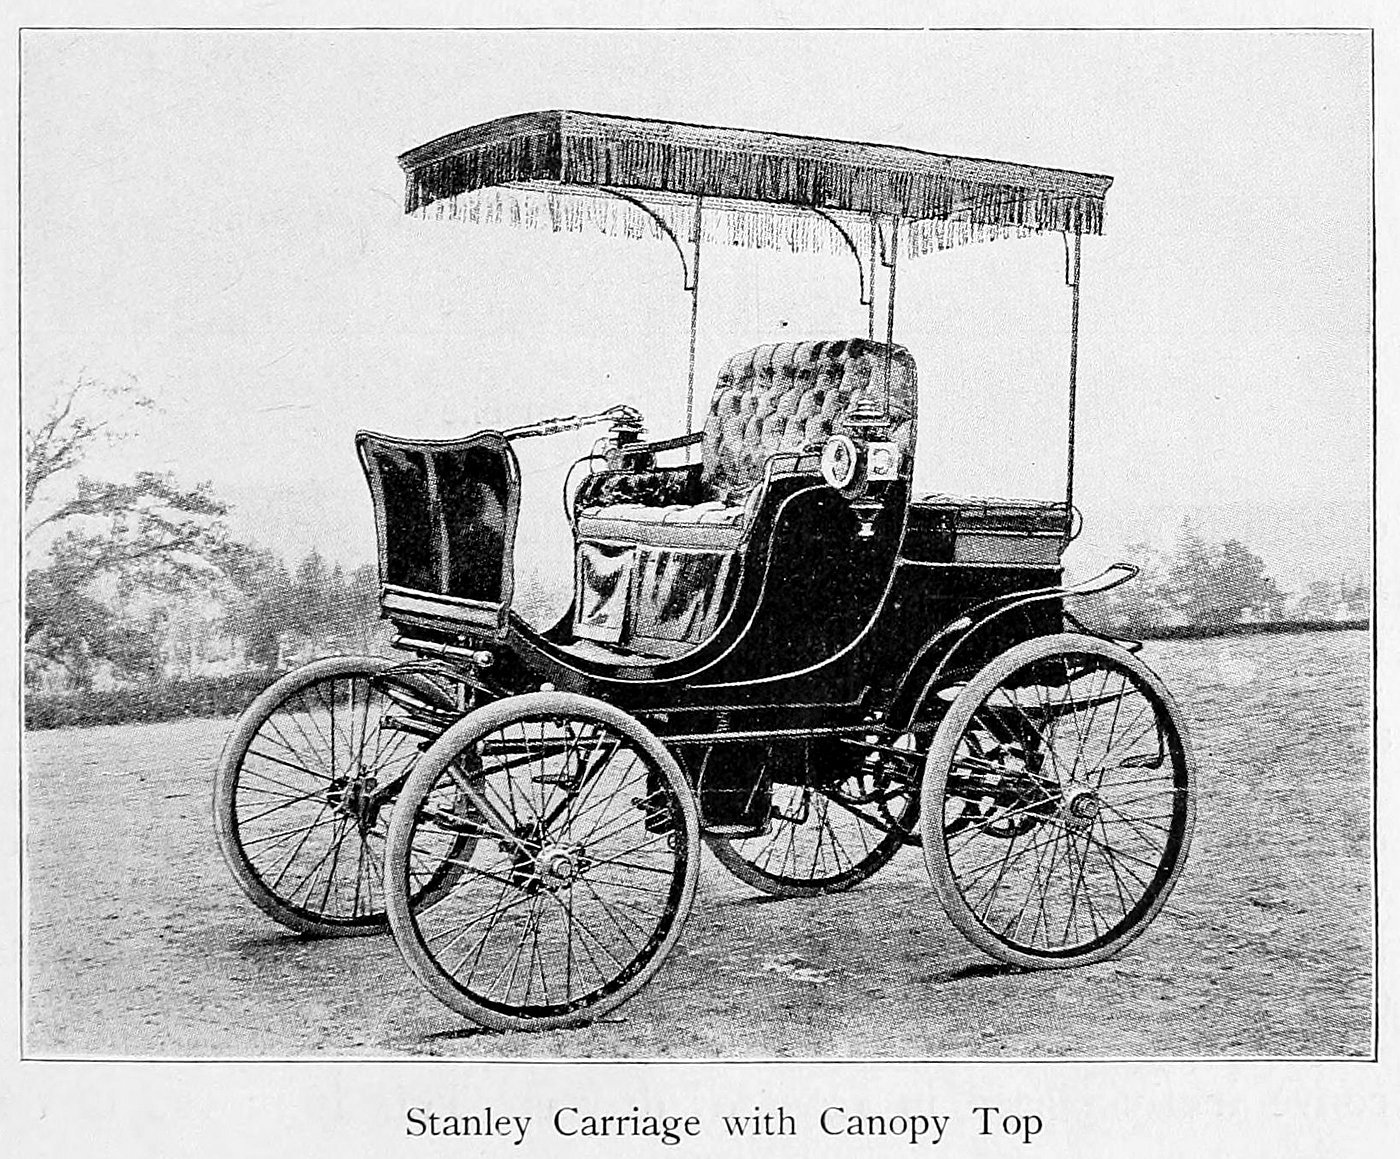 Stanley carriage with canopy top (1900)